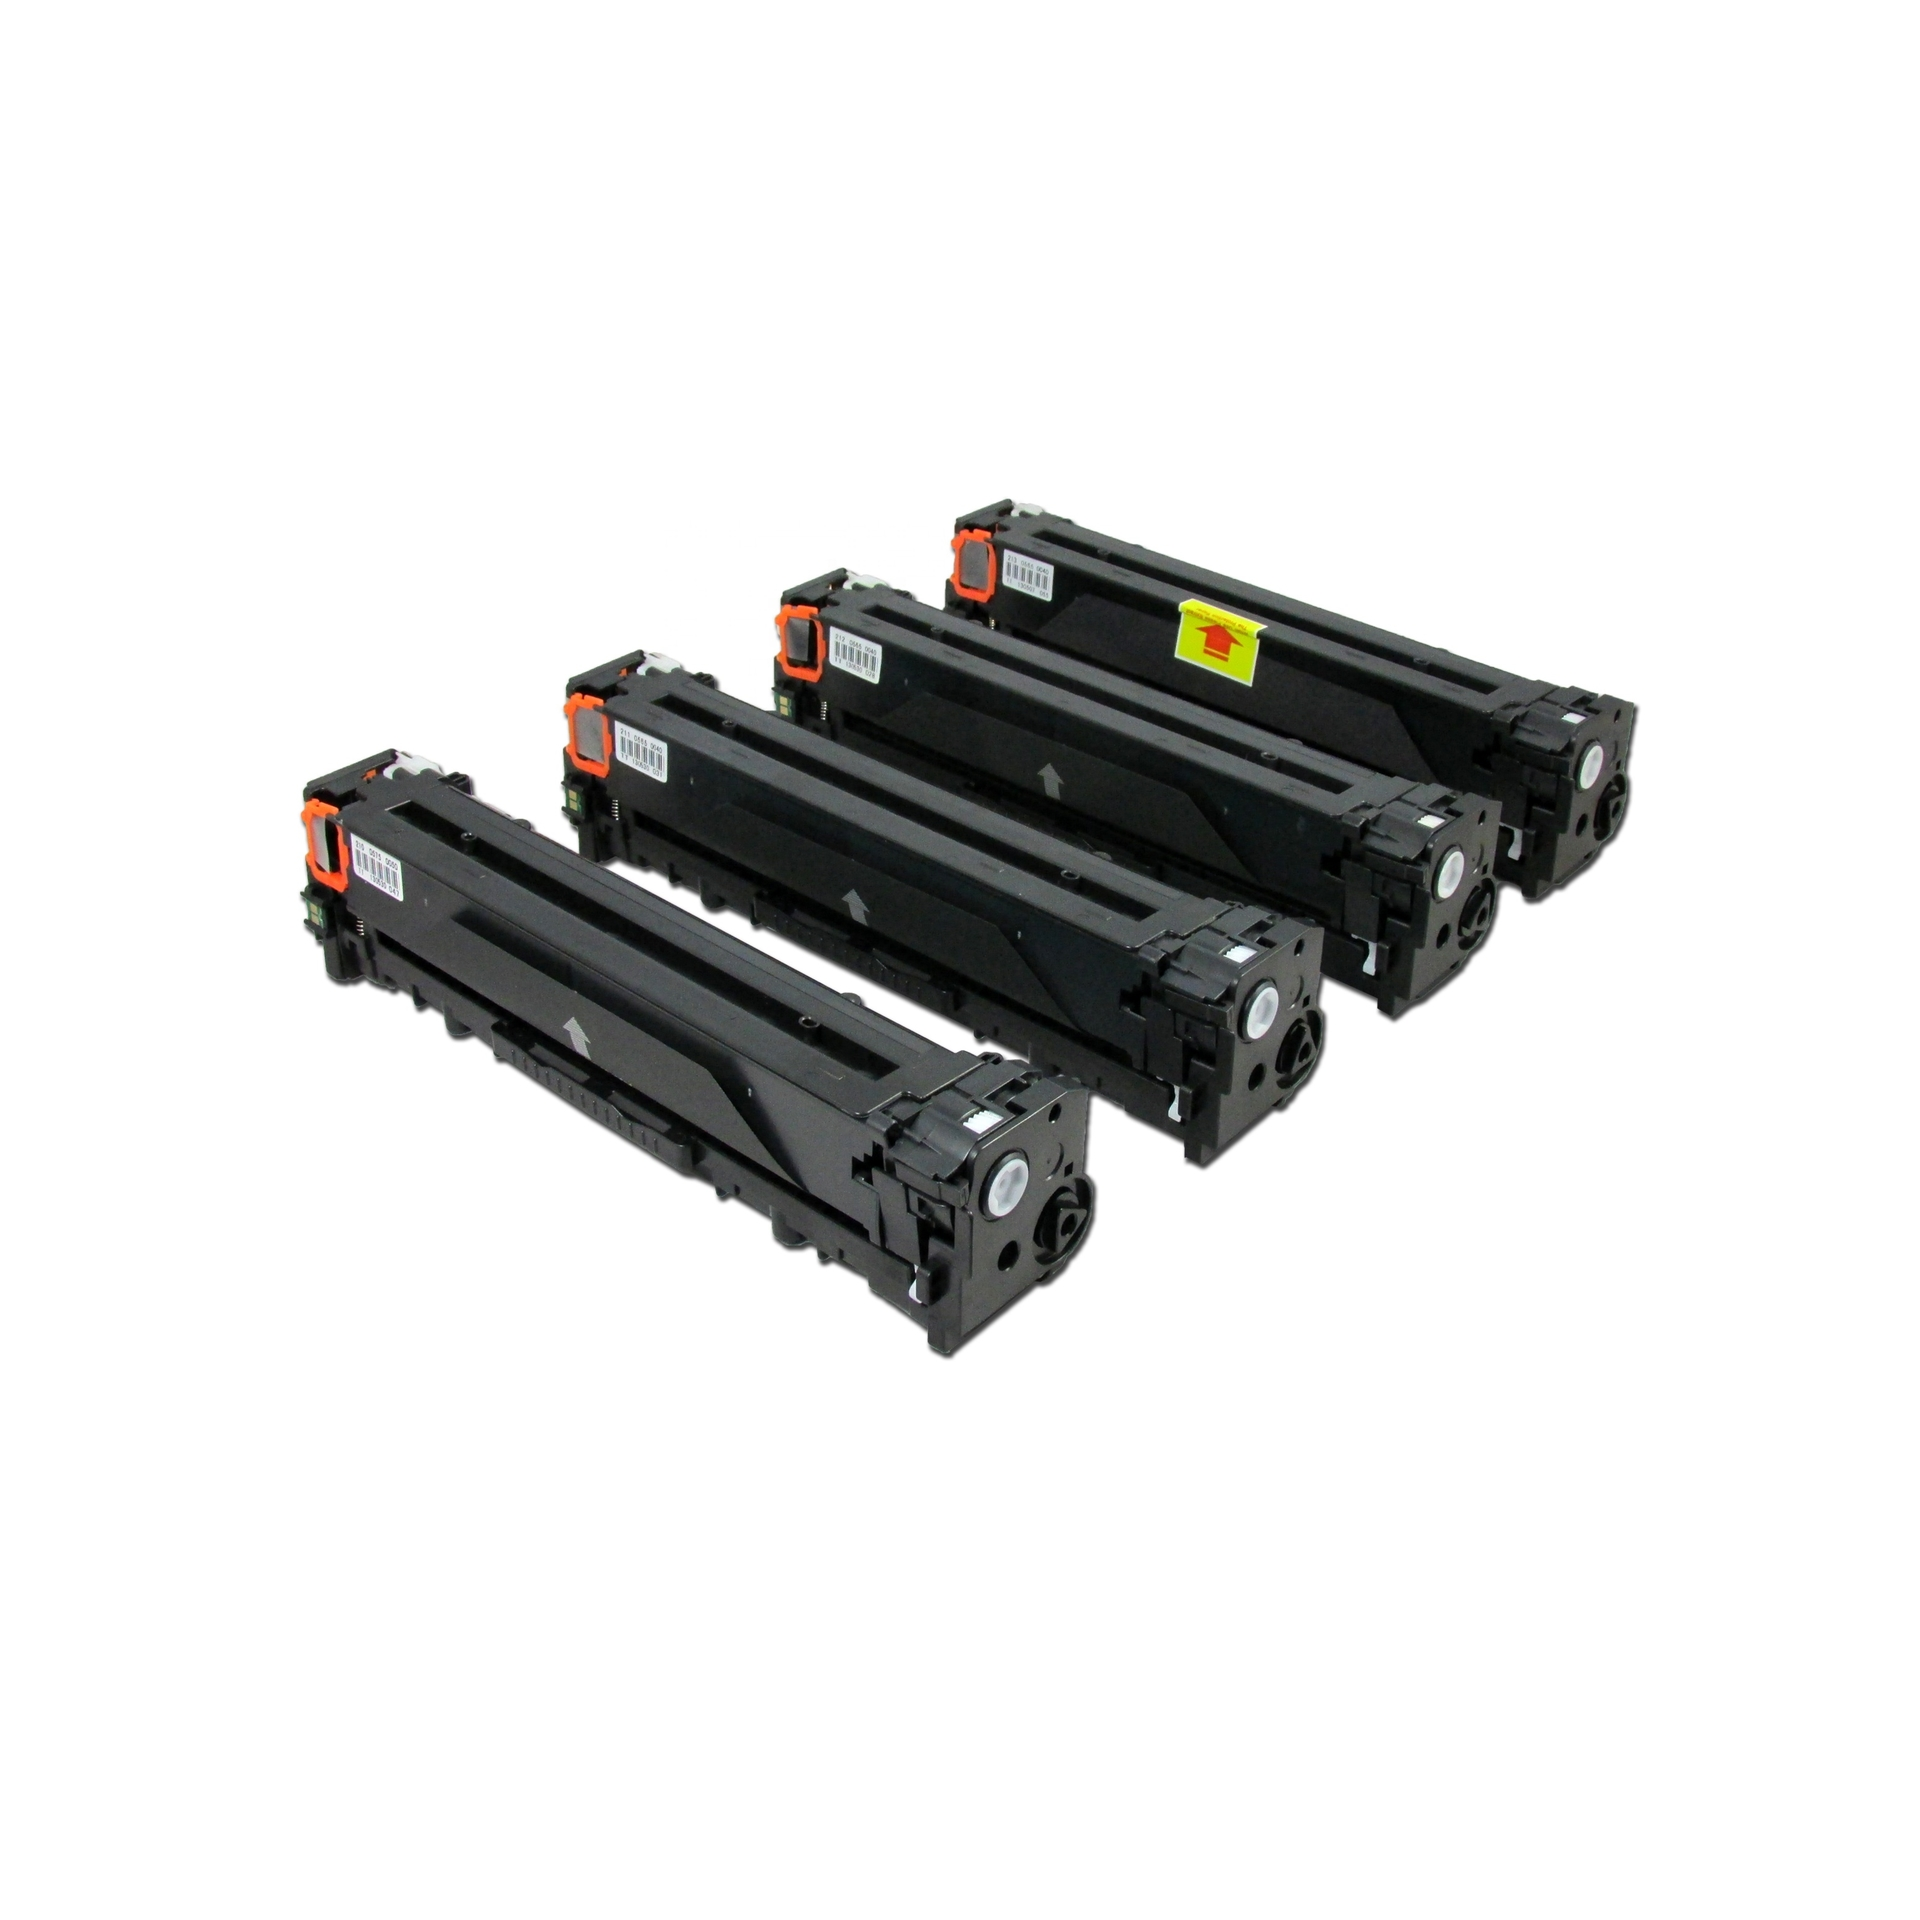 China premium color toner cartridges CF210A CF211A CF212A CF213A 131A for HP LASEJET PRO 200 M251NW/M276NW